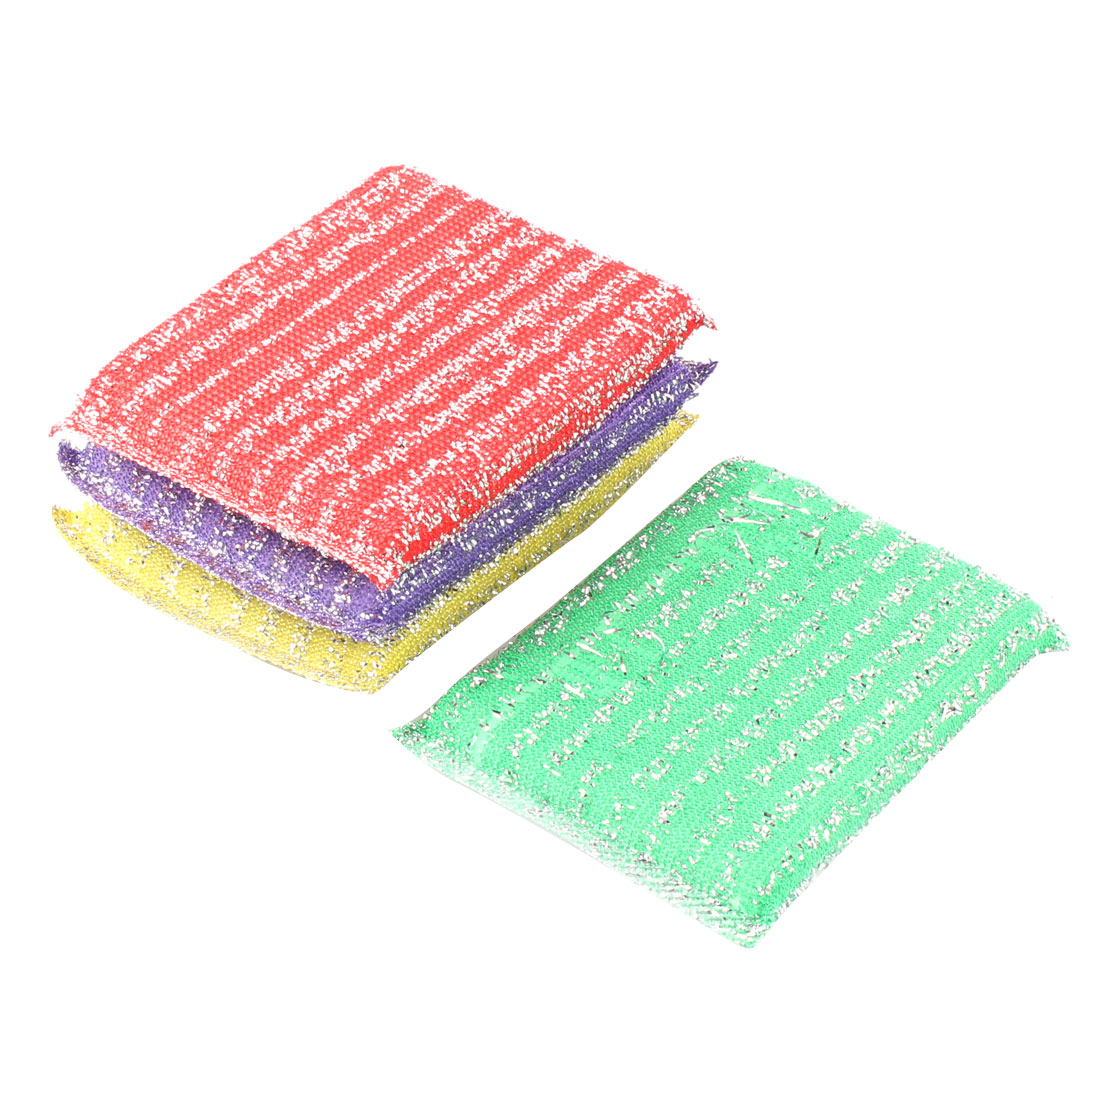 Kitchenware Sponge Rectangle Shape Dishing Cleaning Tool Scrubber Pad Assorted Color 4 Pcs